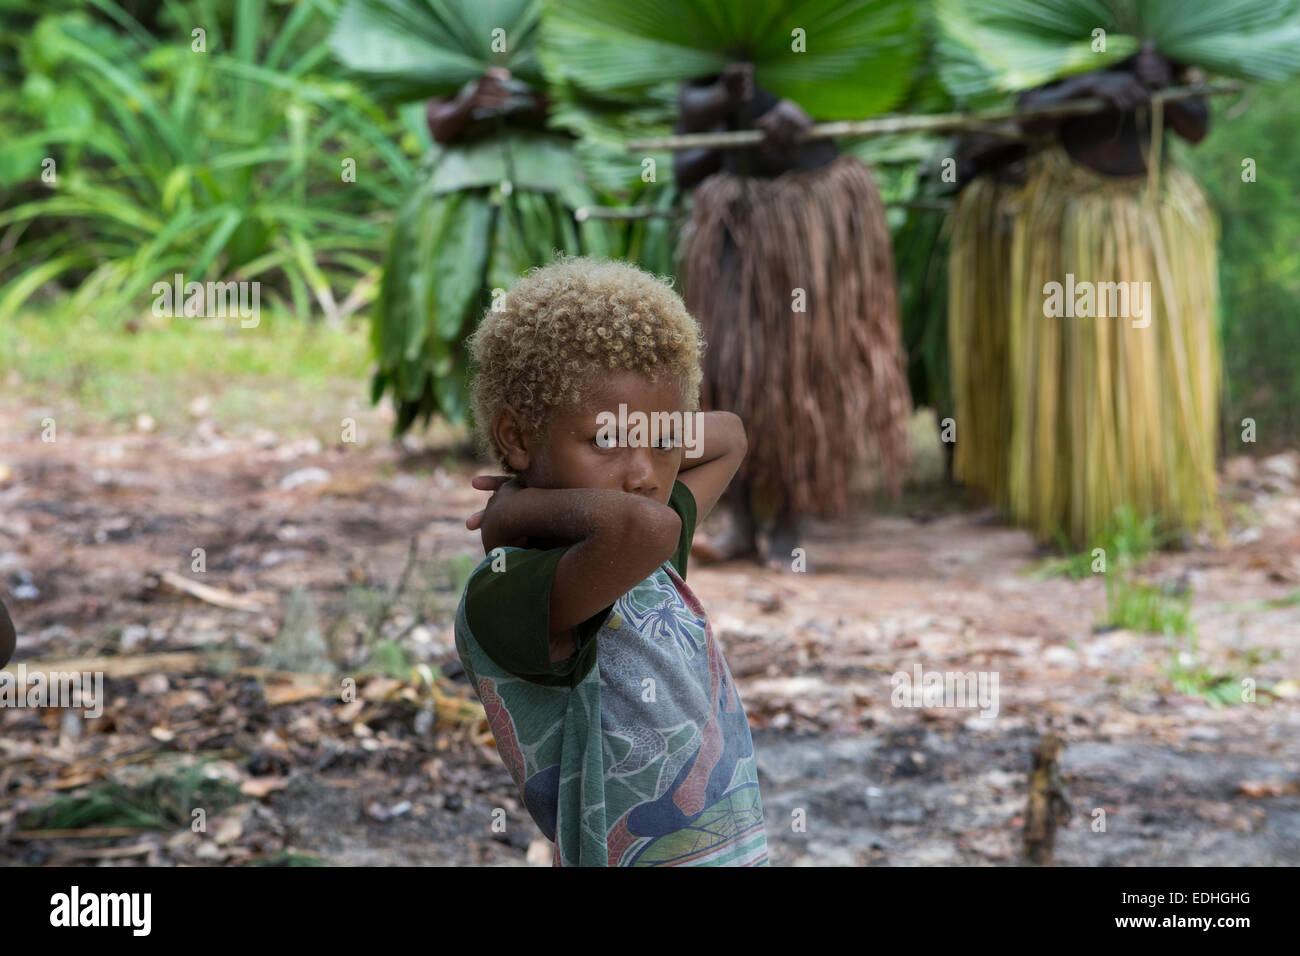 Republic of Vanuatu, Torres Islands, Loh Island. Young boy in front of ceremonial dancers in grass skirts. - Stock Image